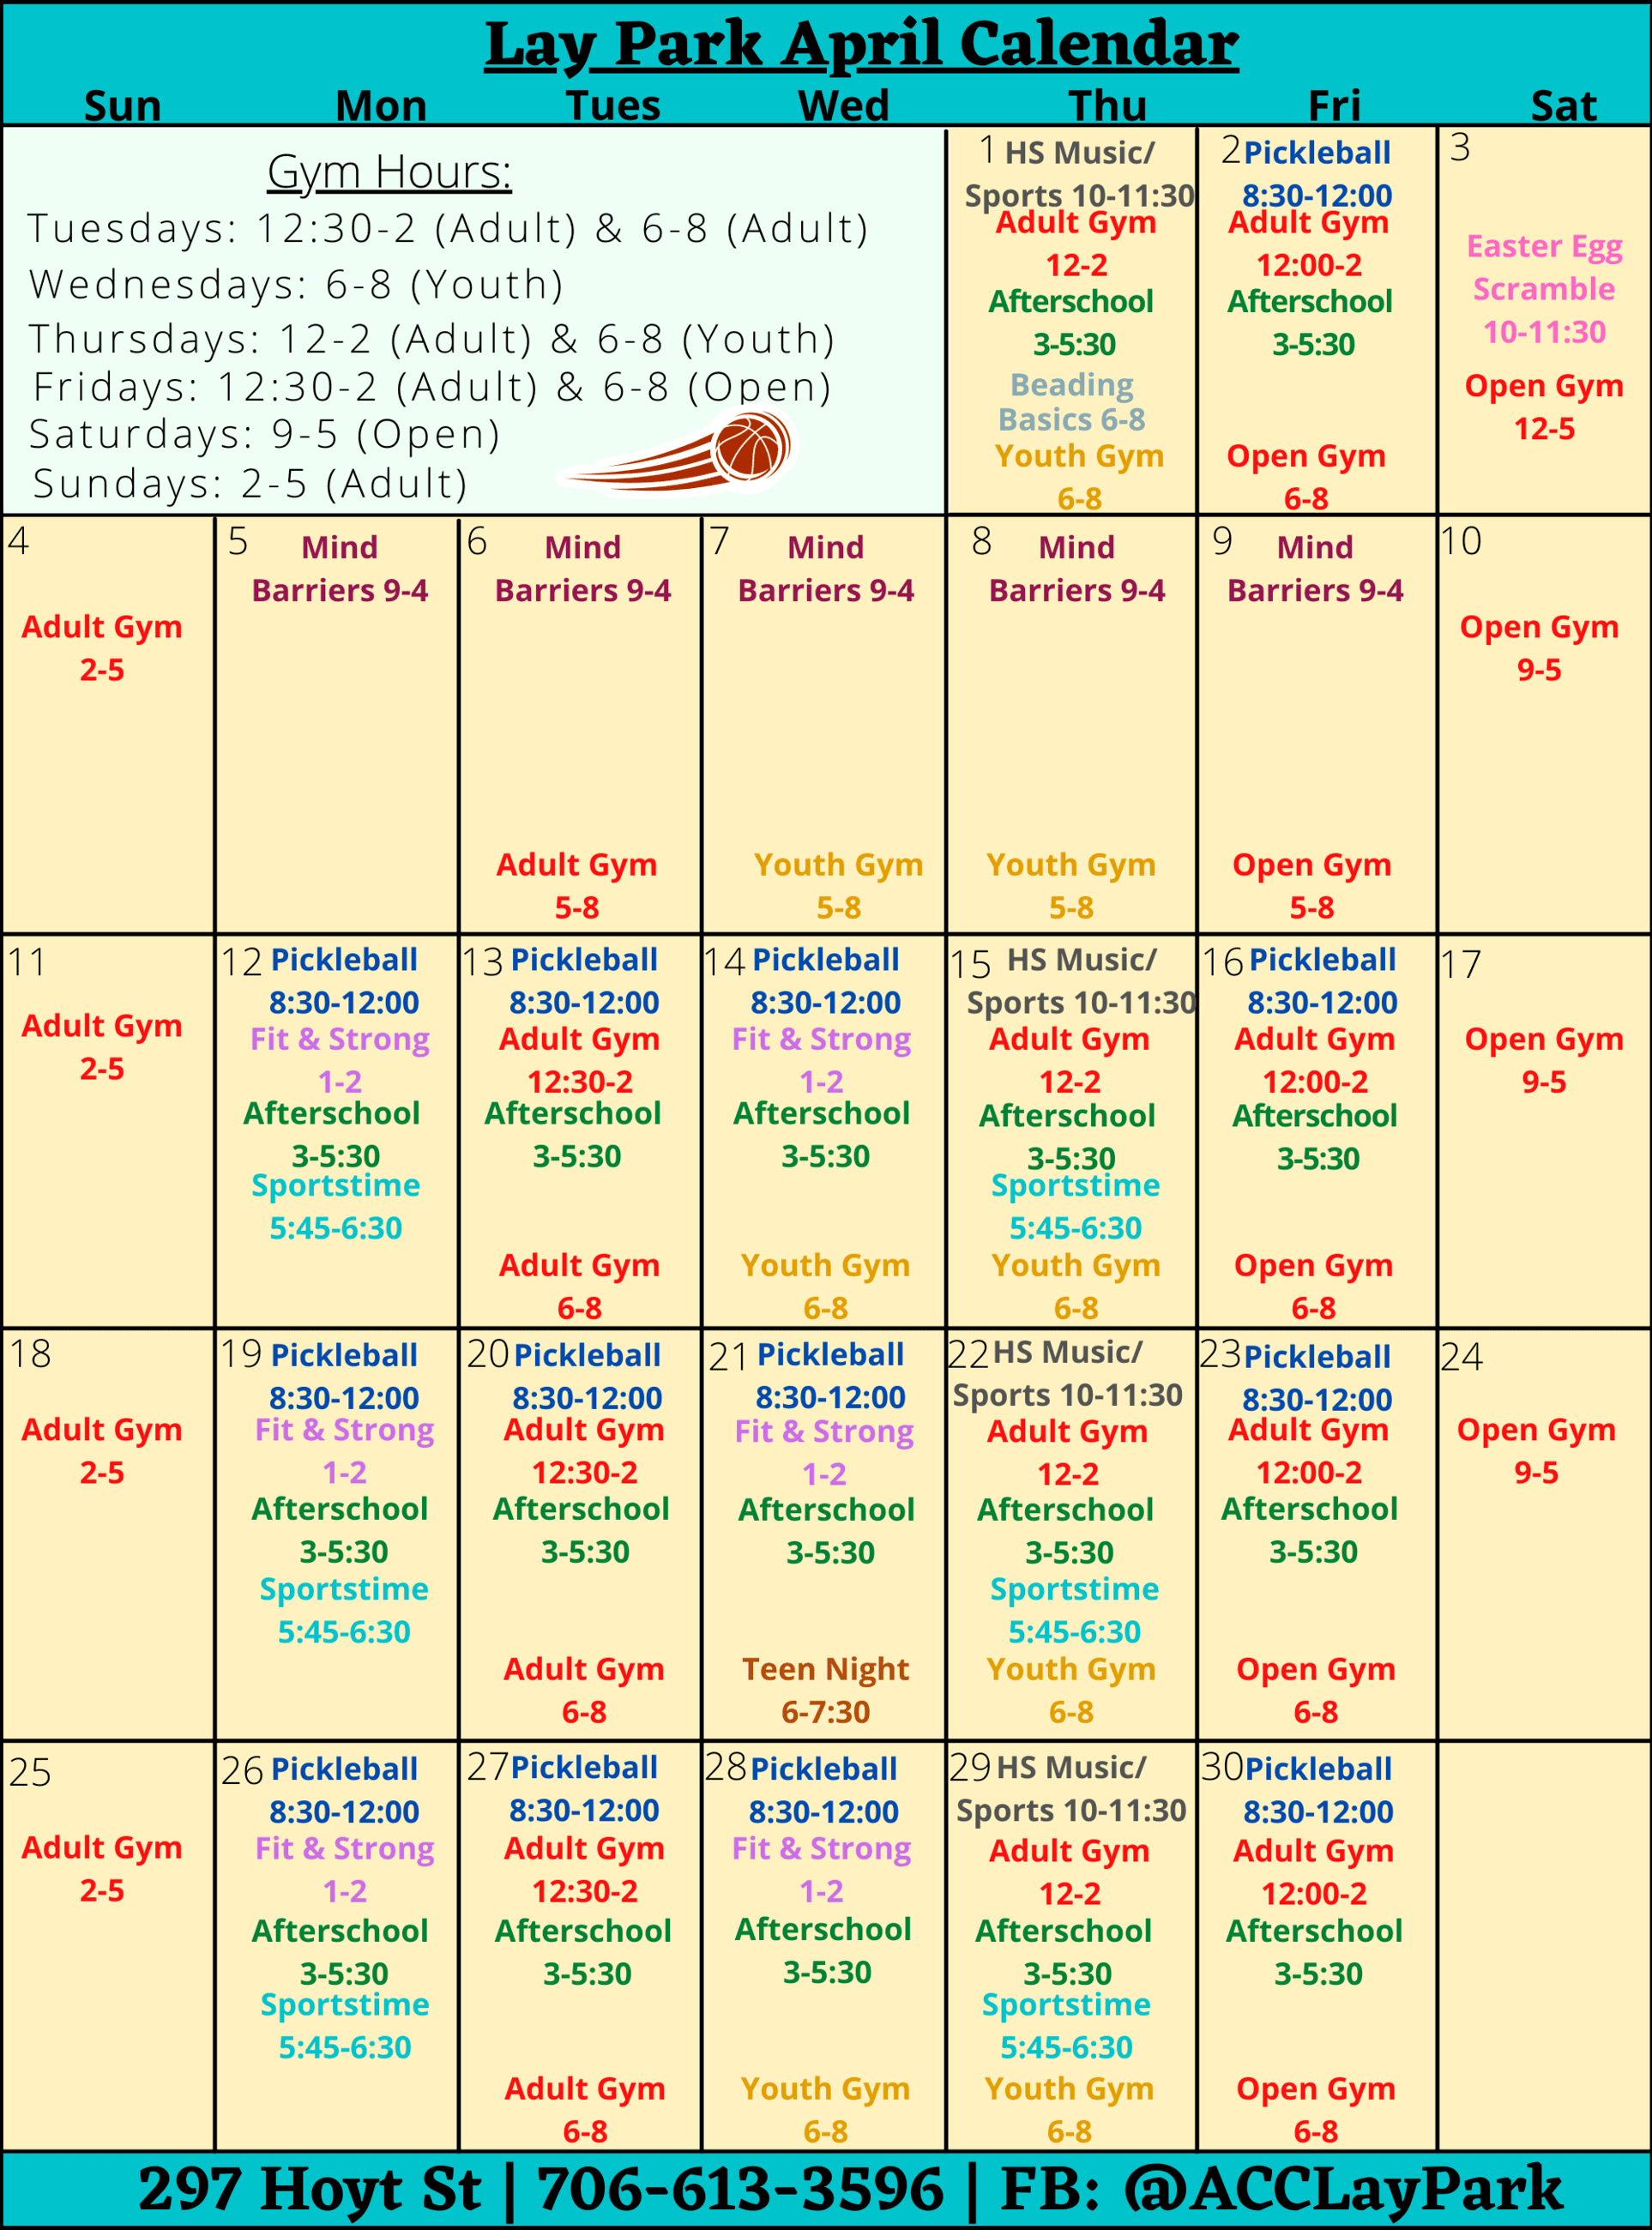 Lay Park's calendar for April.